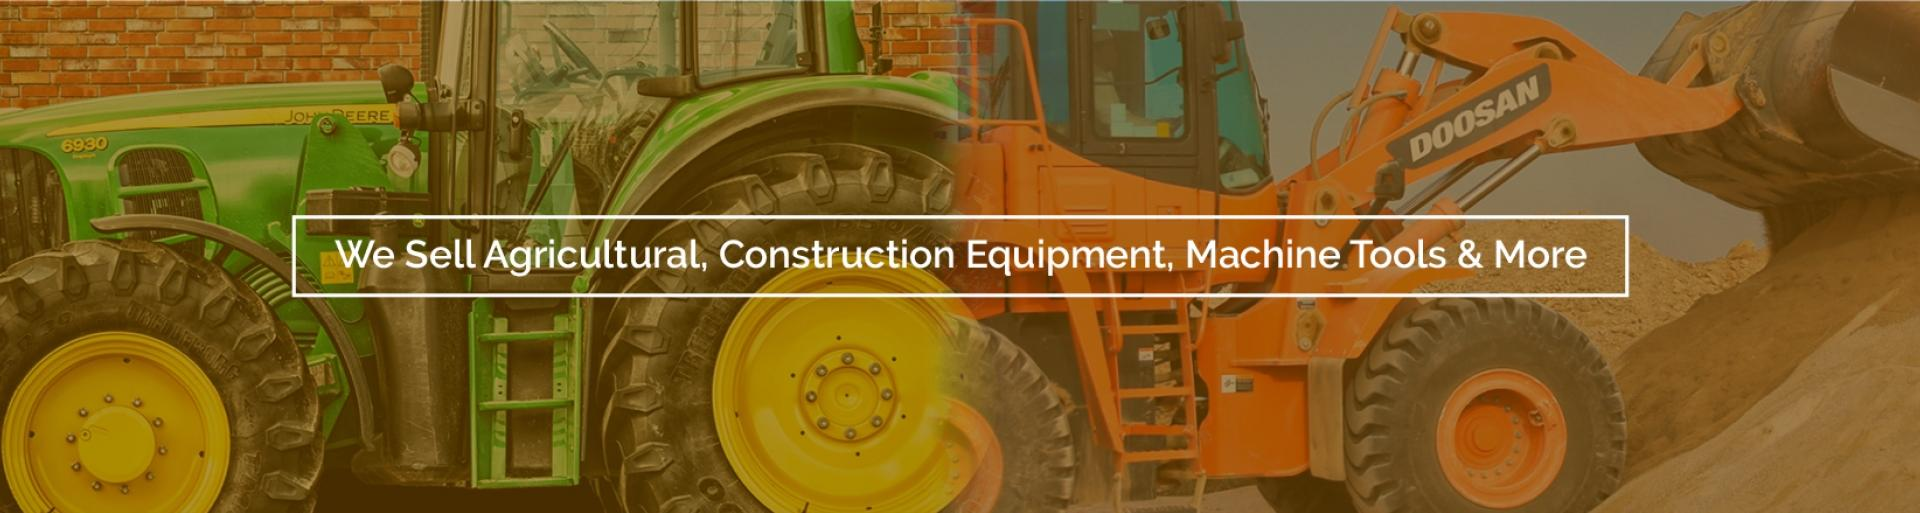 We Sell Agricultural, Construction Equipment, Machine Tools and More